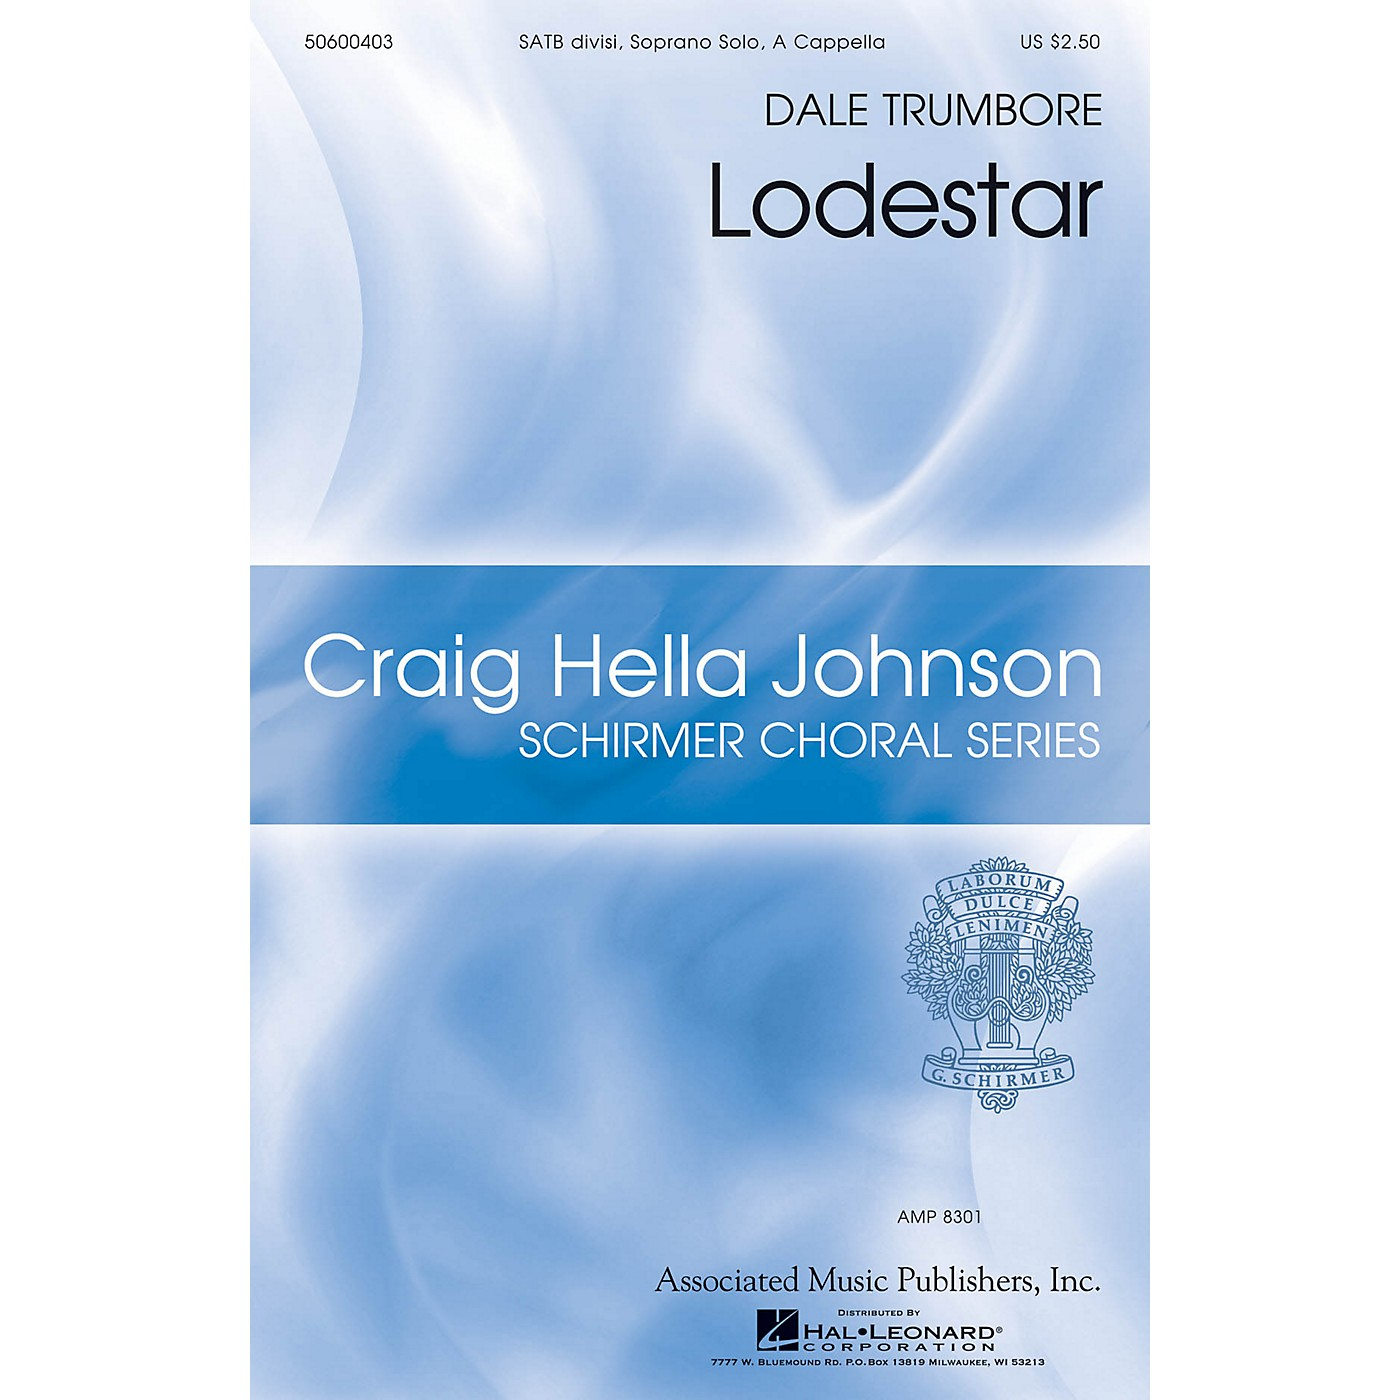 G. Schirmer Lodestar (Craig Hella Johnson Choral Series) SATB DIVISI AND SOLO composed by Dale Trumbore thumbnail